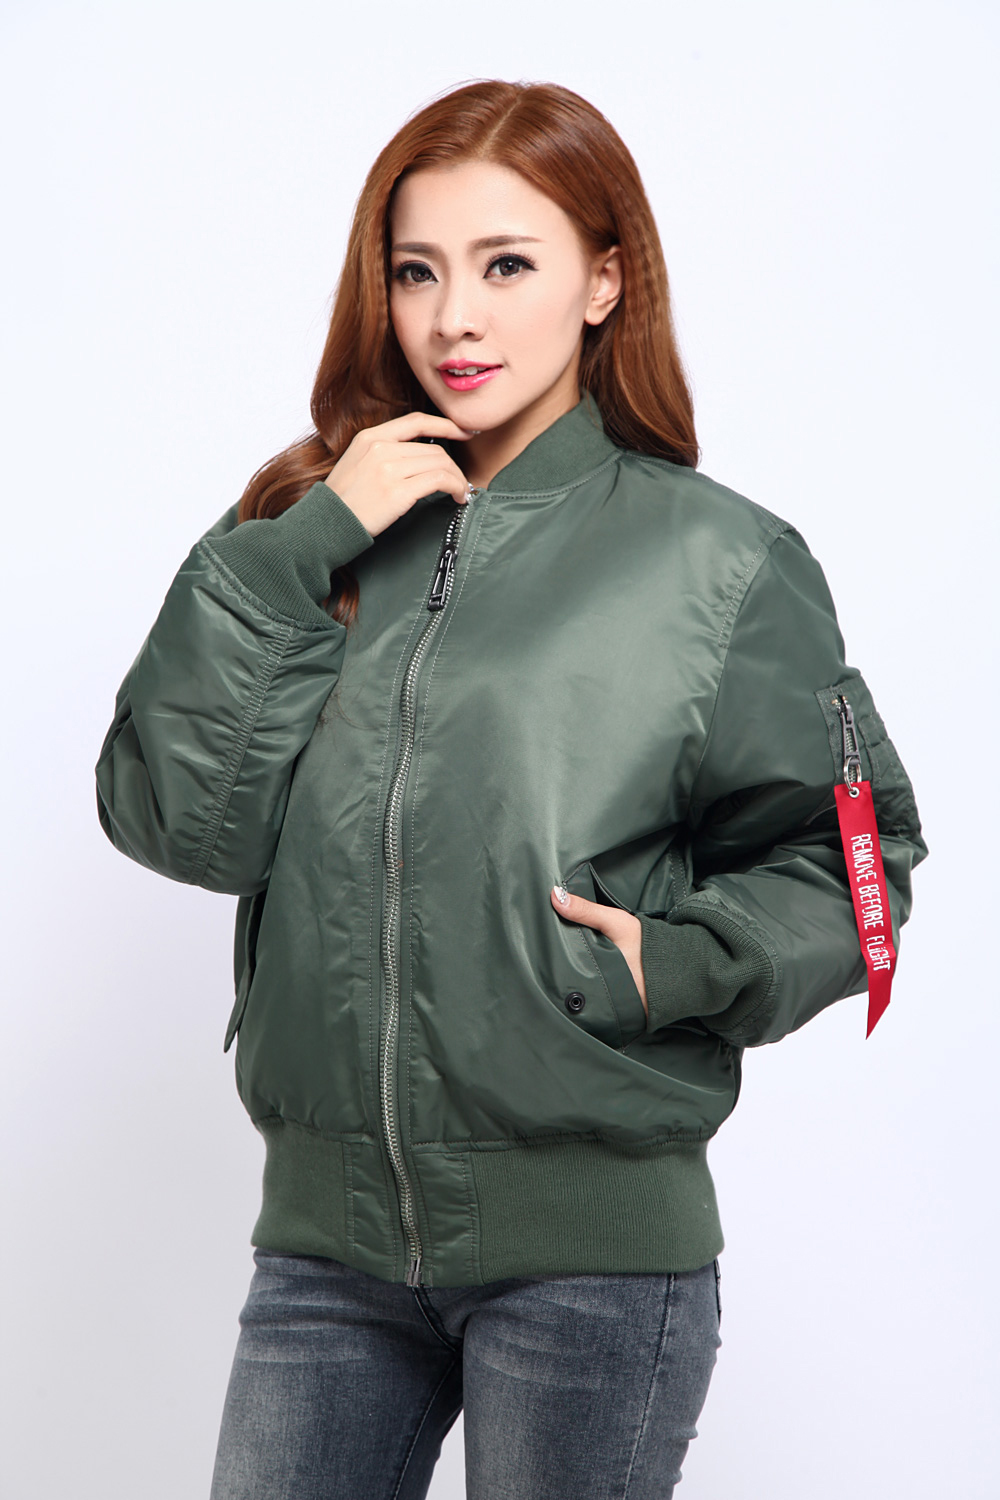 Aliexpress.com : Buy New Seibertron women MA1 Jacket Black ...